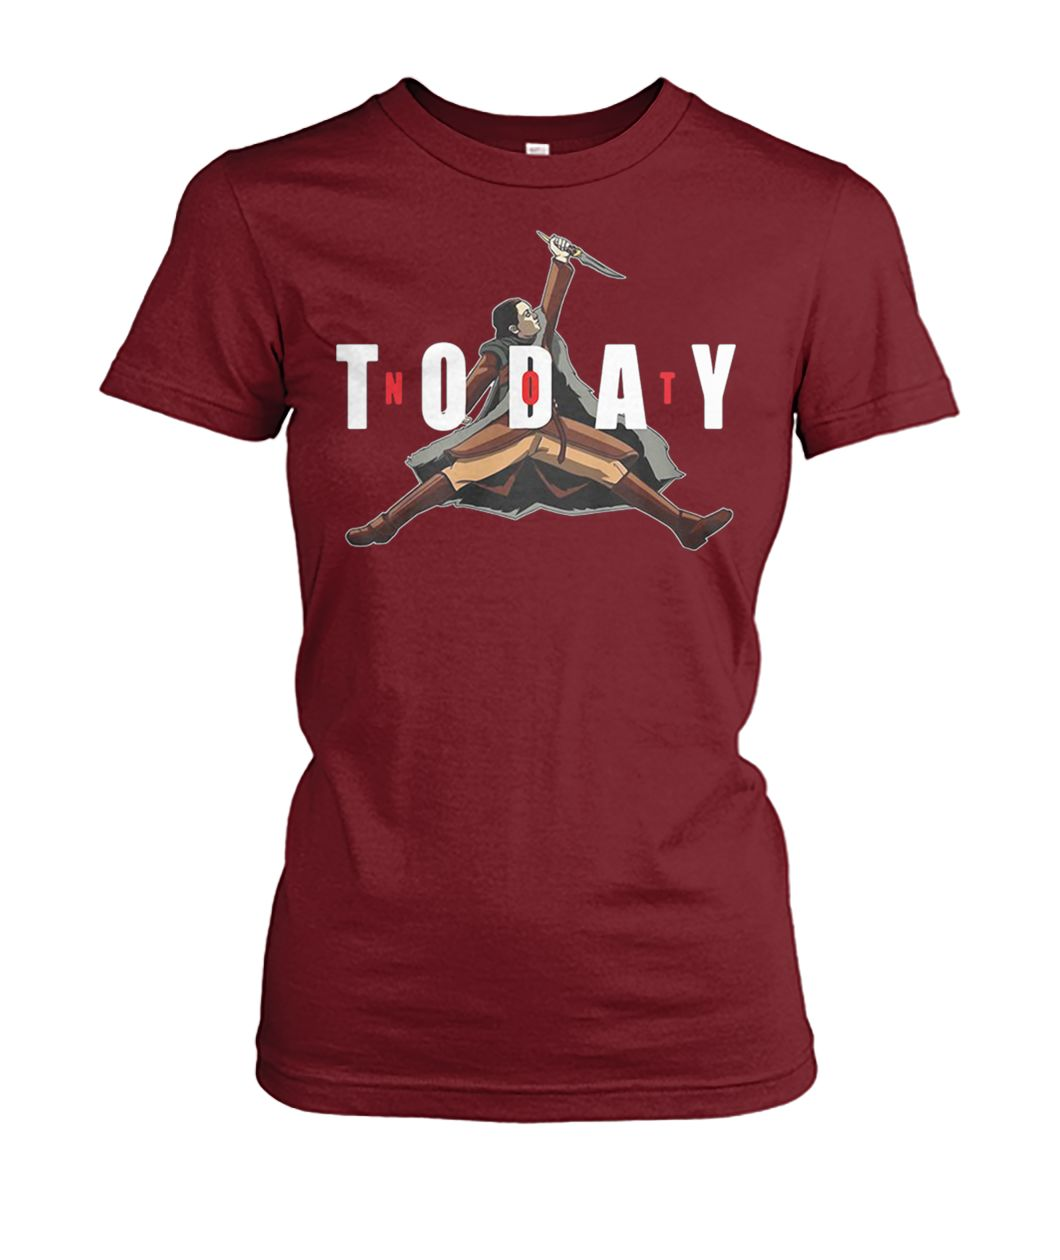 535a77dfec0e Where to purchase  GOT arya stark air jordan not today shirt. Or you can  get it in here  https   www.moteefe.com store got-arya-stark-air-jordan-not-today-  ...